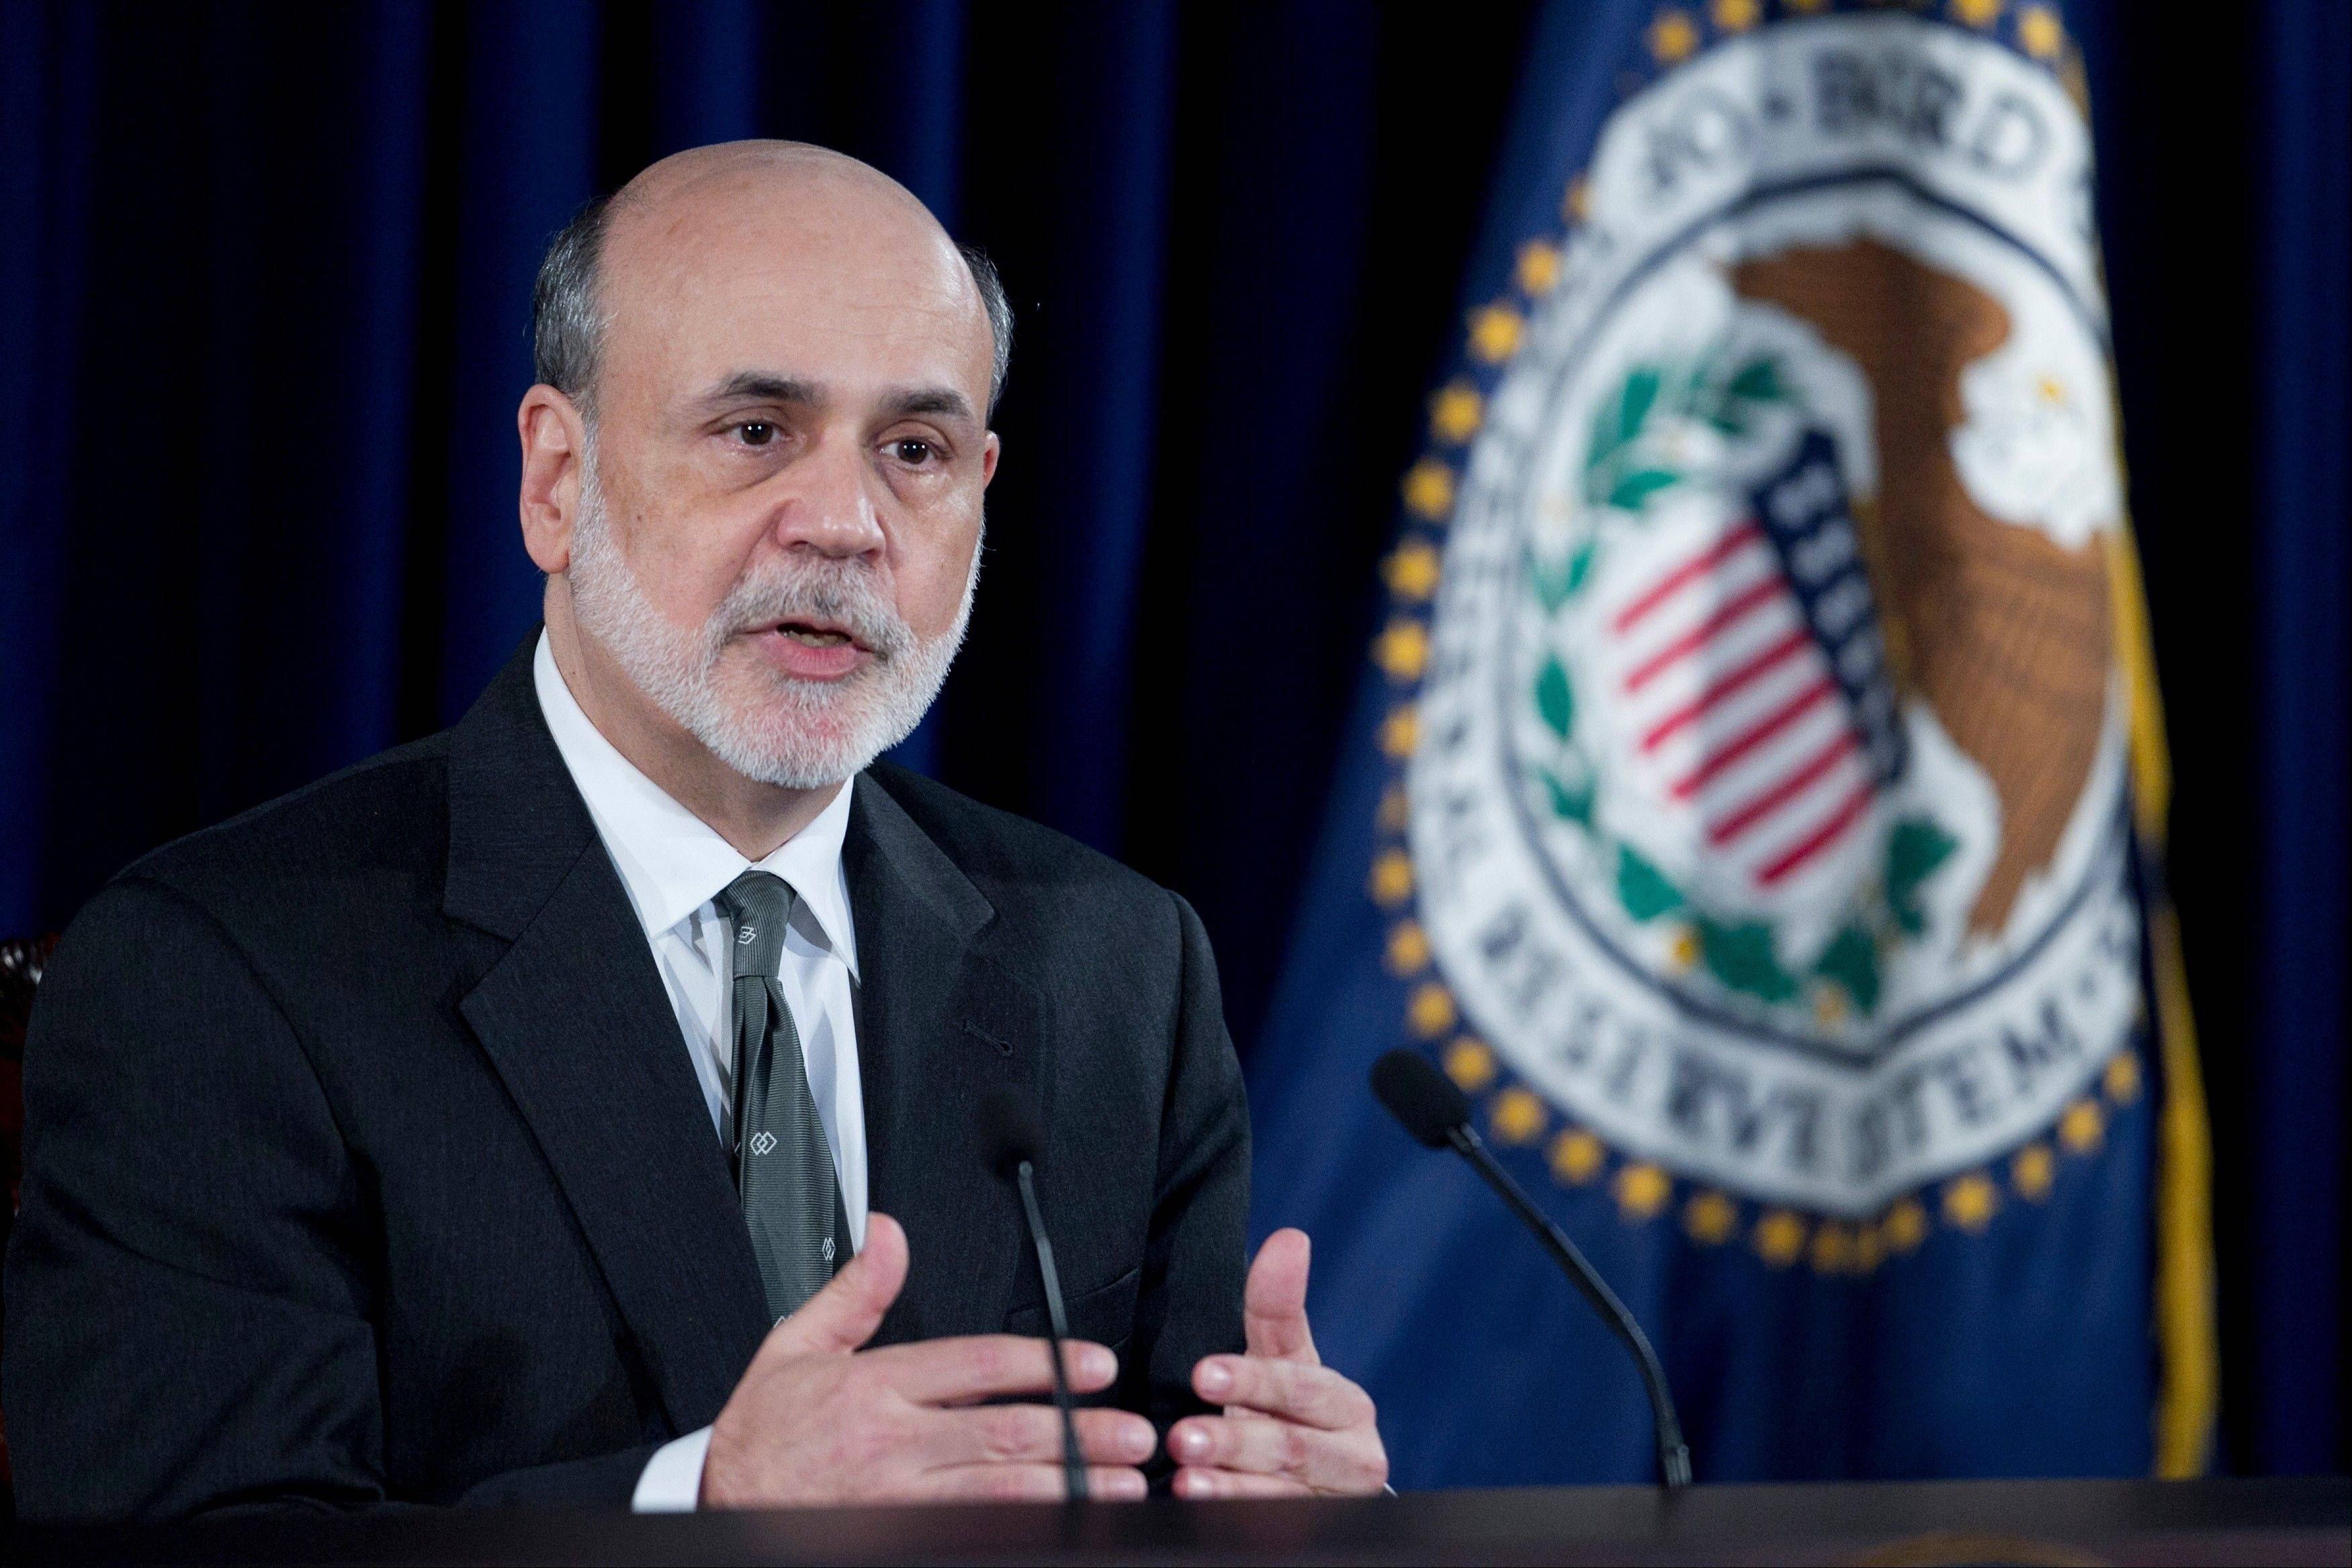 Associated PressBen S. Bernanke, chairman of the U.S. Federal Reserve, speaks during a news conference following a Federal Open Market Committee (FOMC) meeting in Washington, D.C., Thursday. The Federal Reserve said it will expand its holdings of long-term securities with open-ended purchases of $40 billion of mortgage debt a month in a third round of quantitative easing.